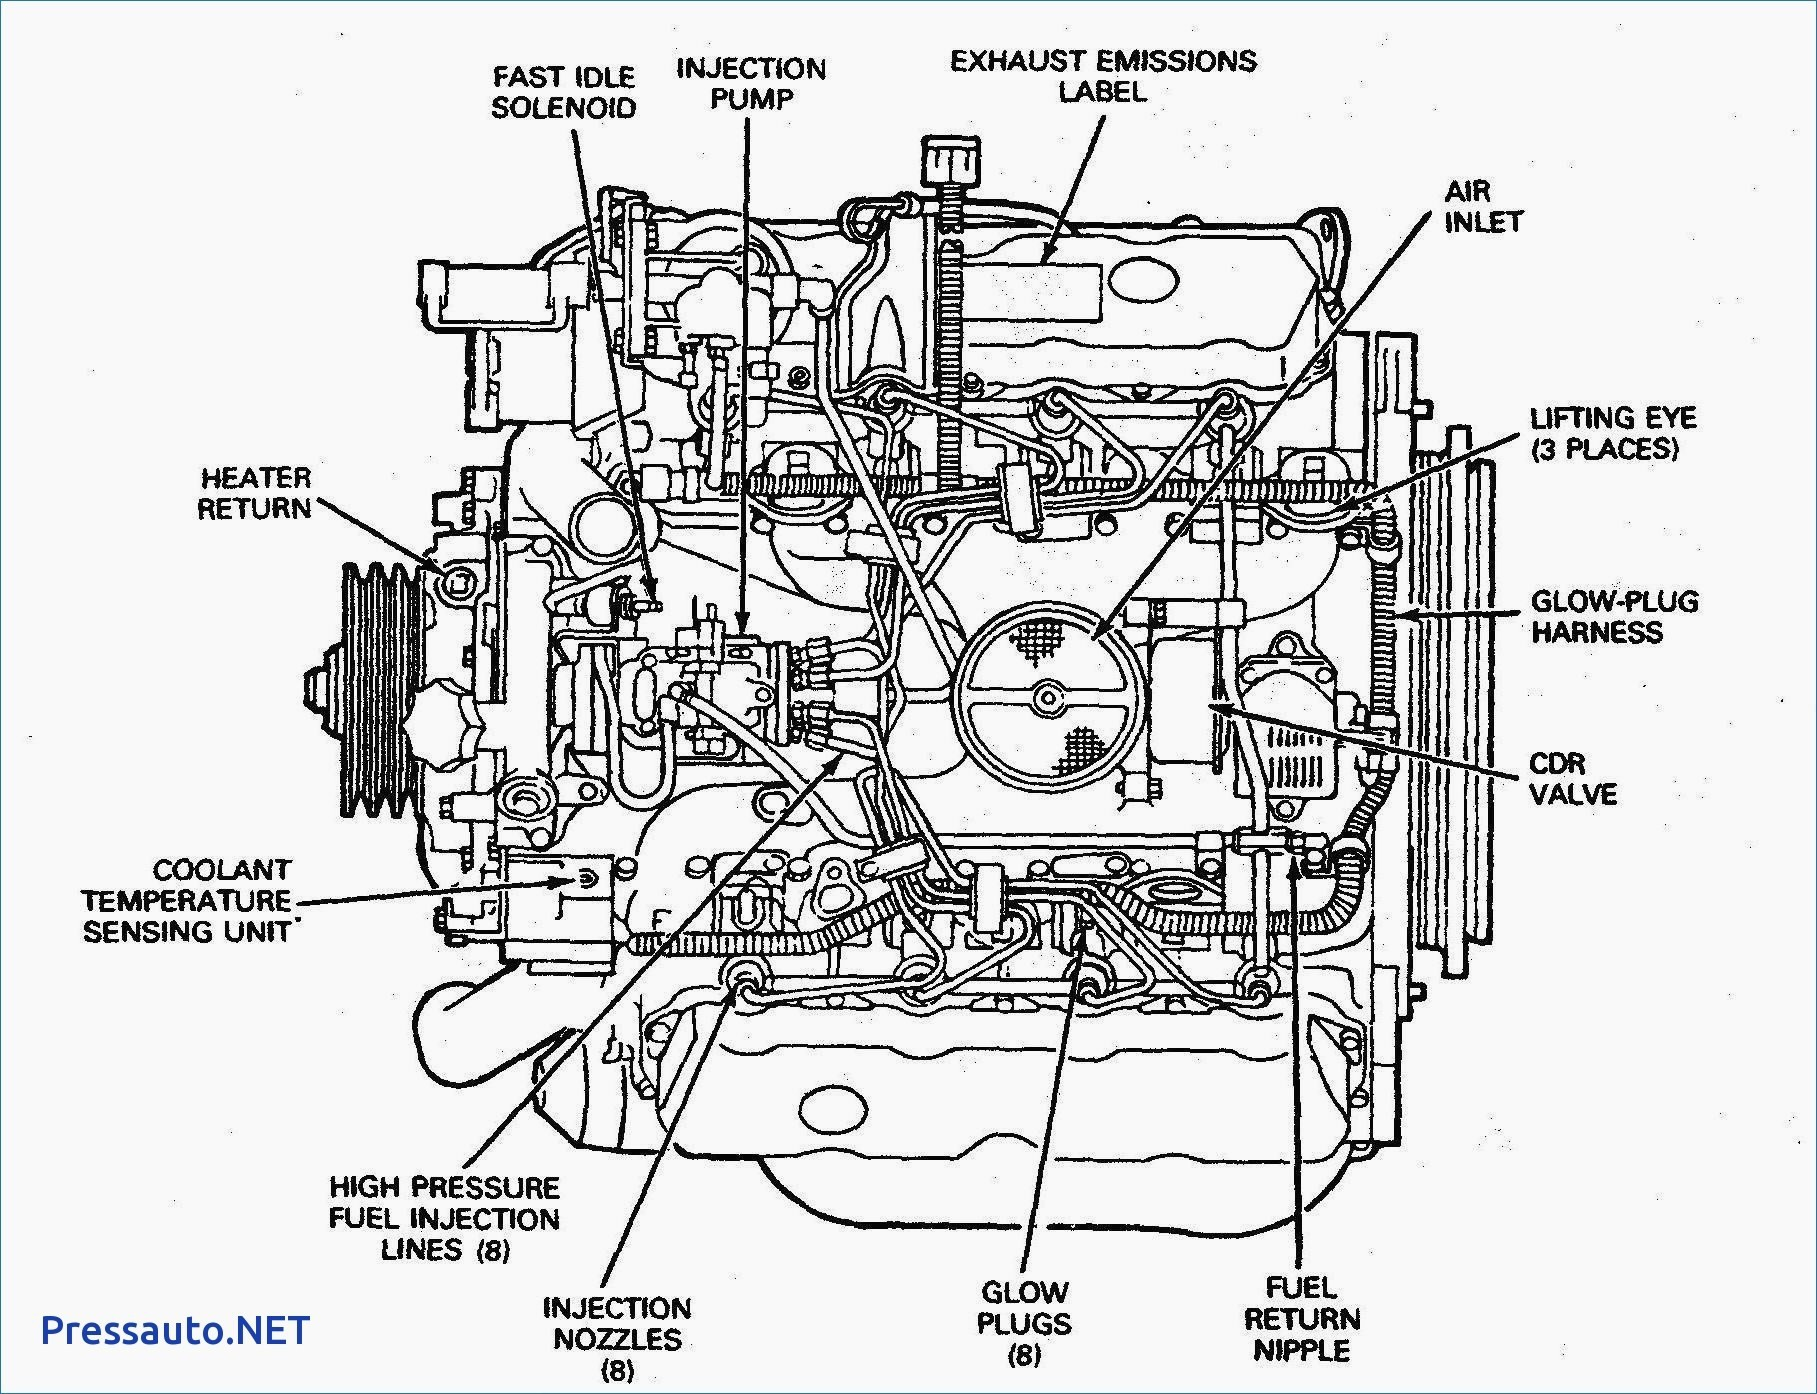 Ford 4 0 sohc Engine Diagram ford 7 3 Glow Plug Wiring Diagram In Addition  ford